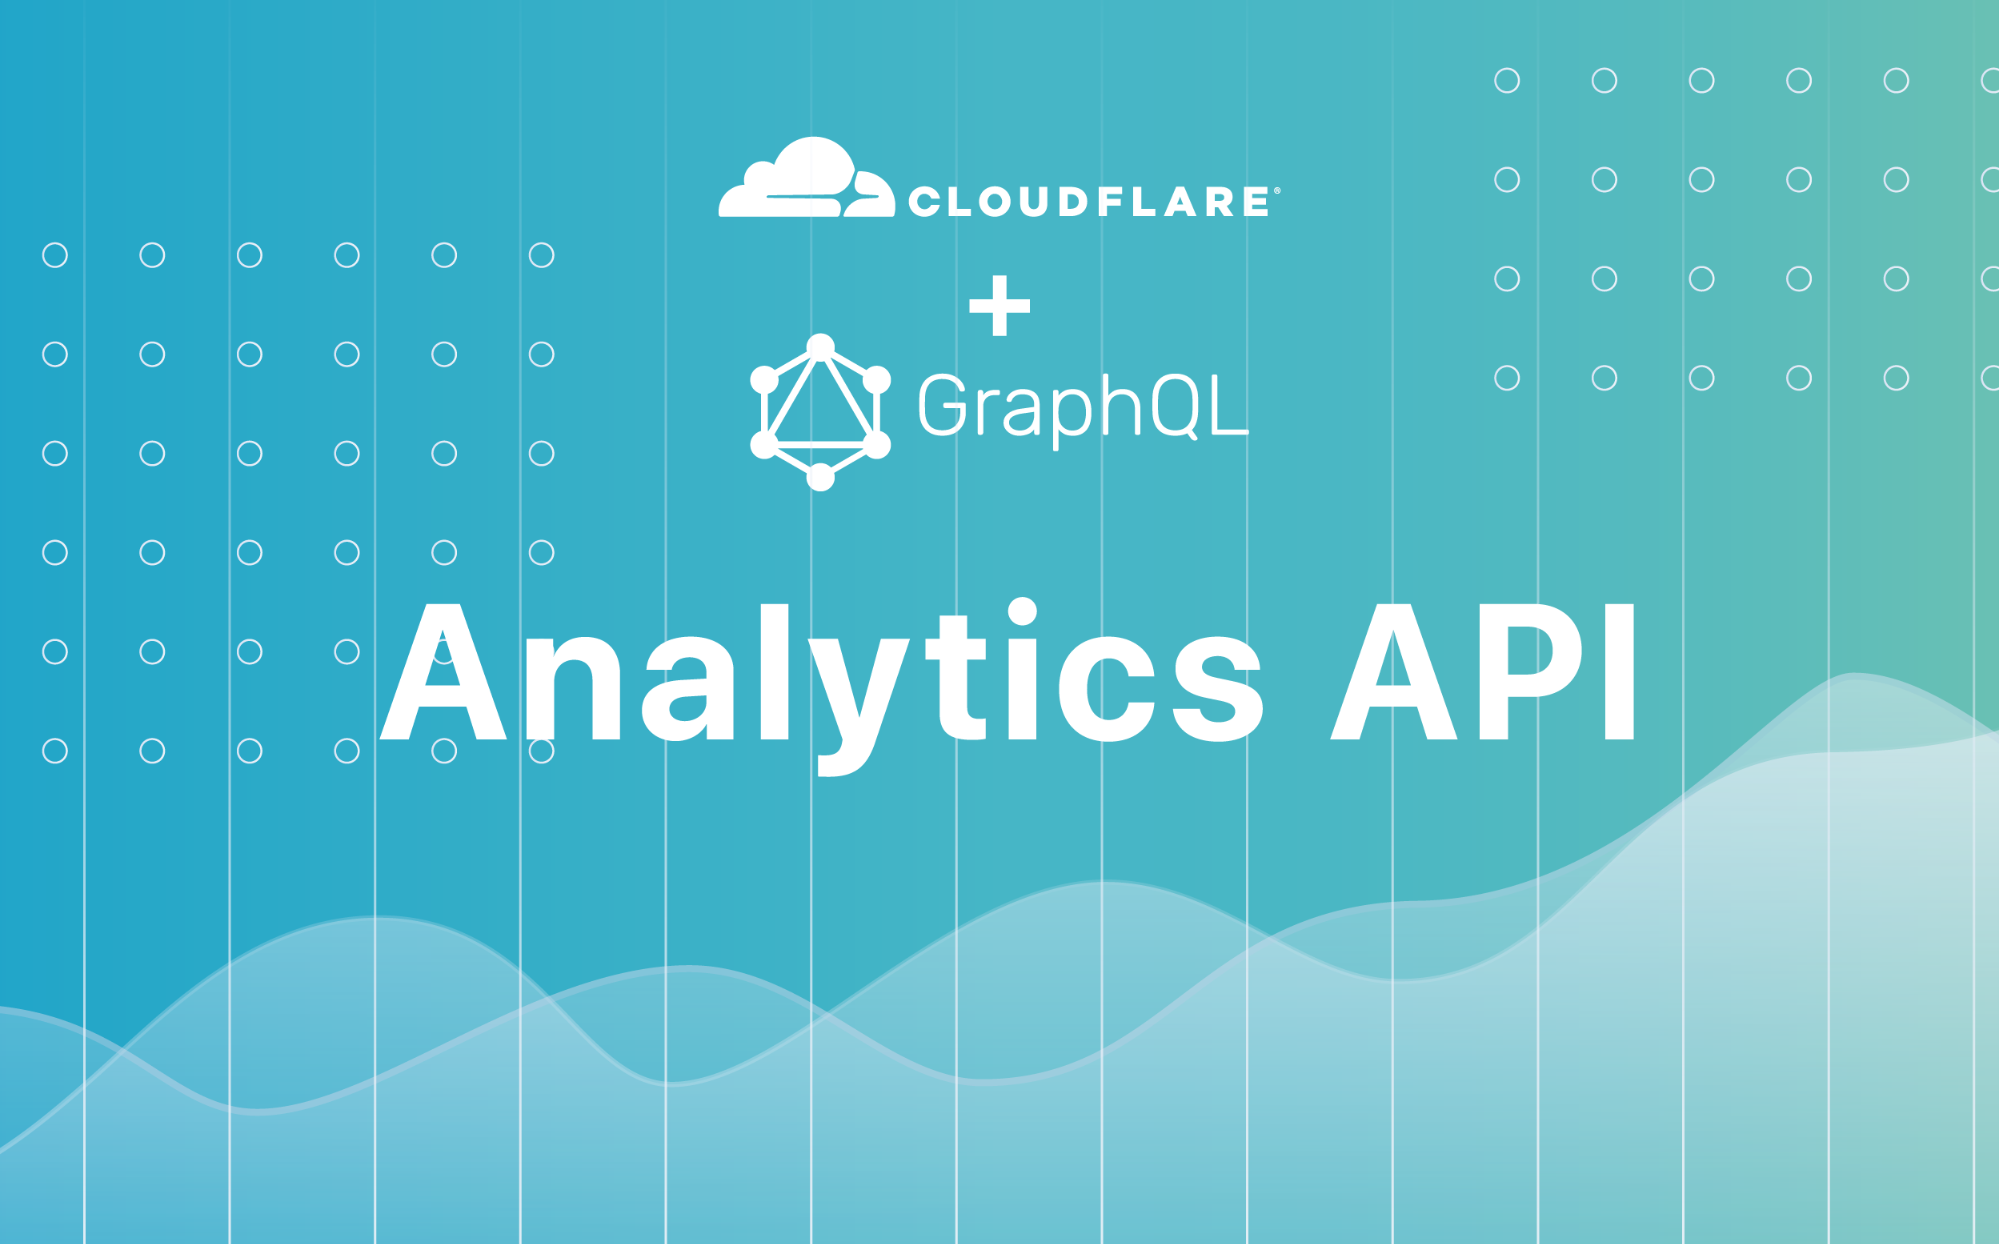 Introducing the GraphQL Analytics API: exactly the data you need, all in one place